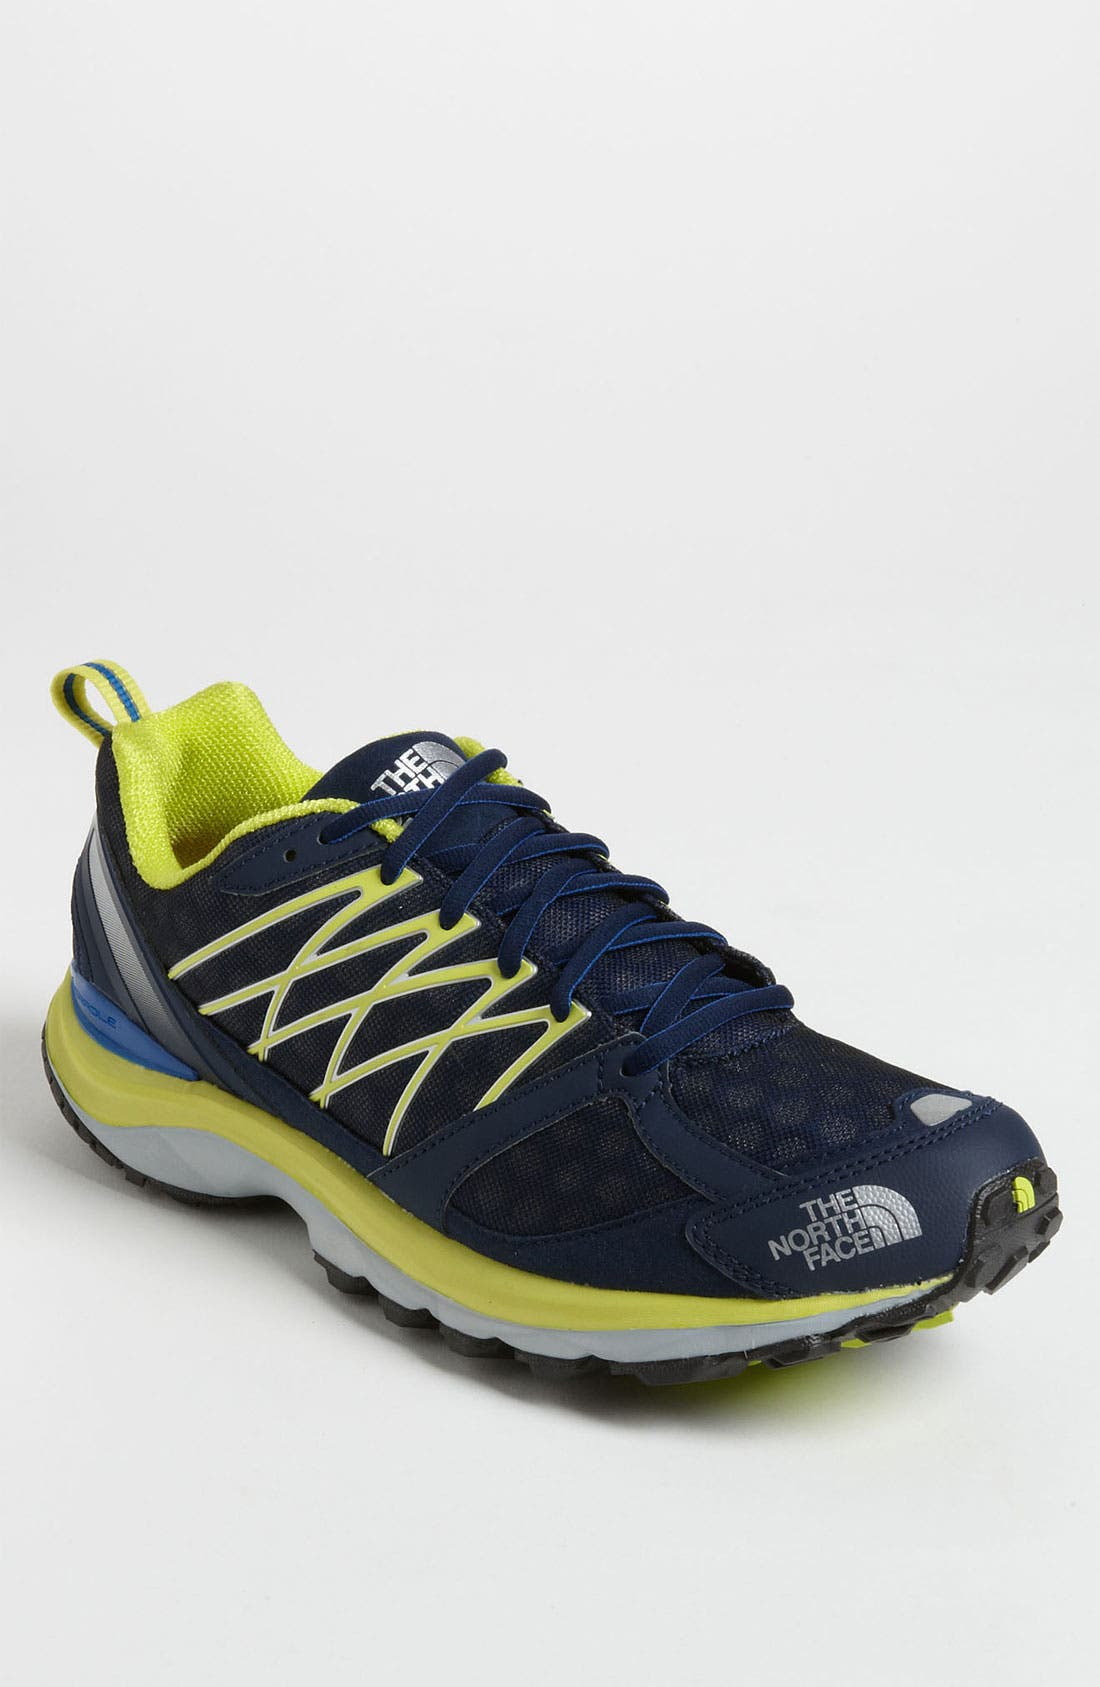 Alternate Image 1 Selected - The North Face 'Double-Track Guide' Trail Running Shoe (Men)